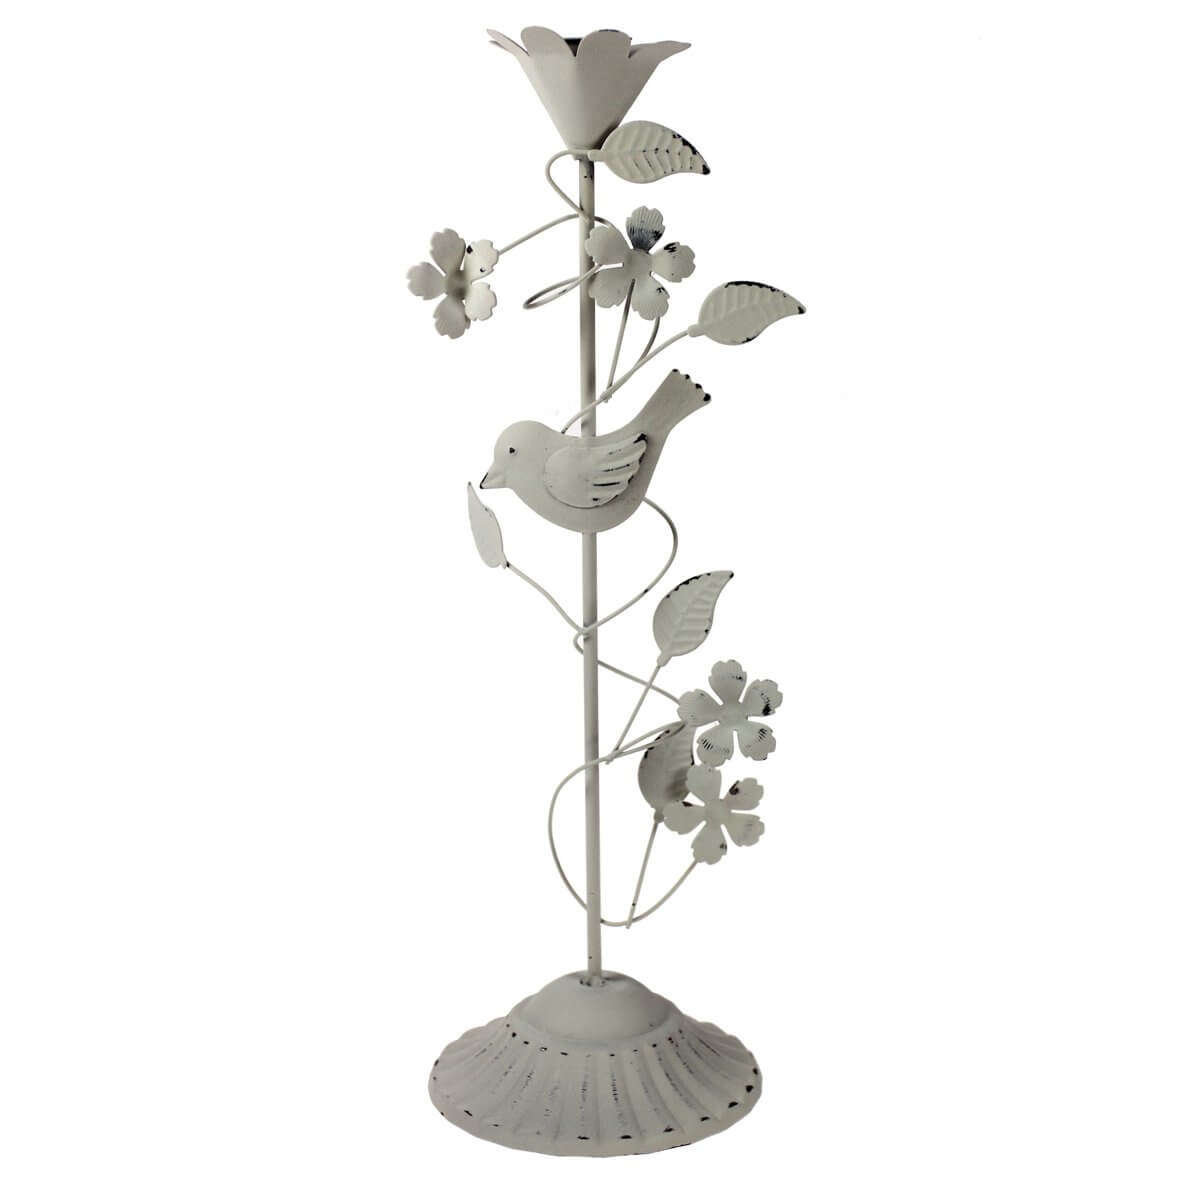 Candlestick with Flowers & Bird